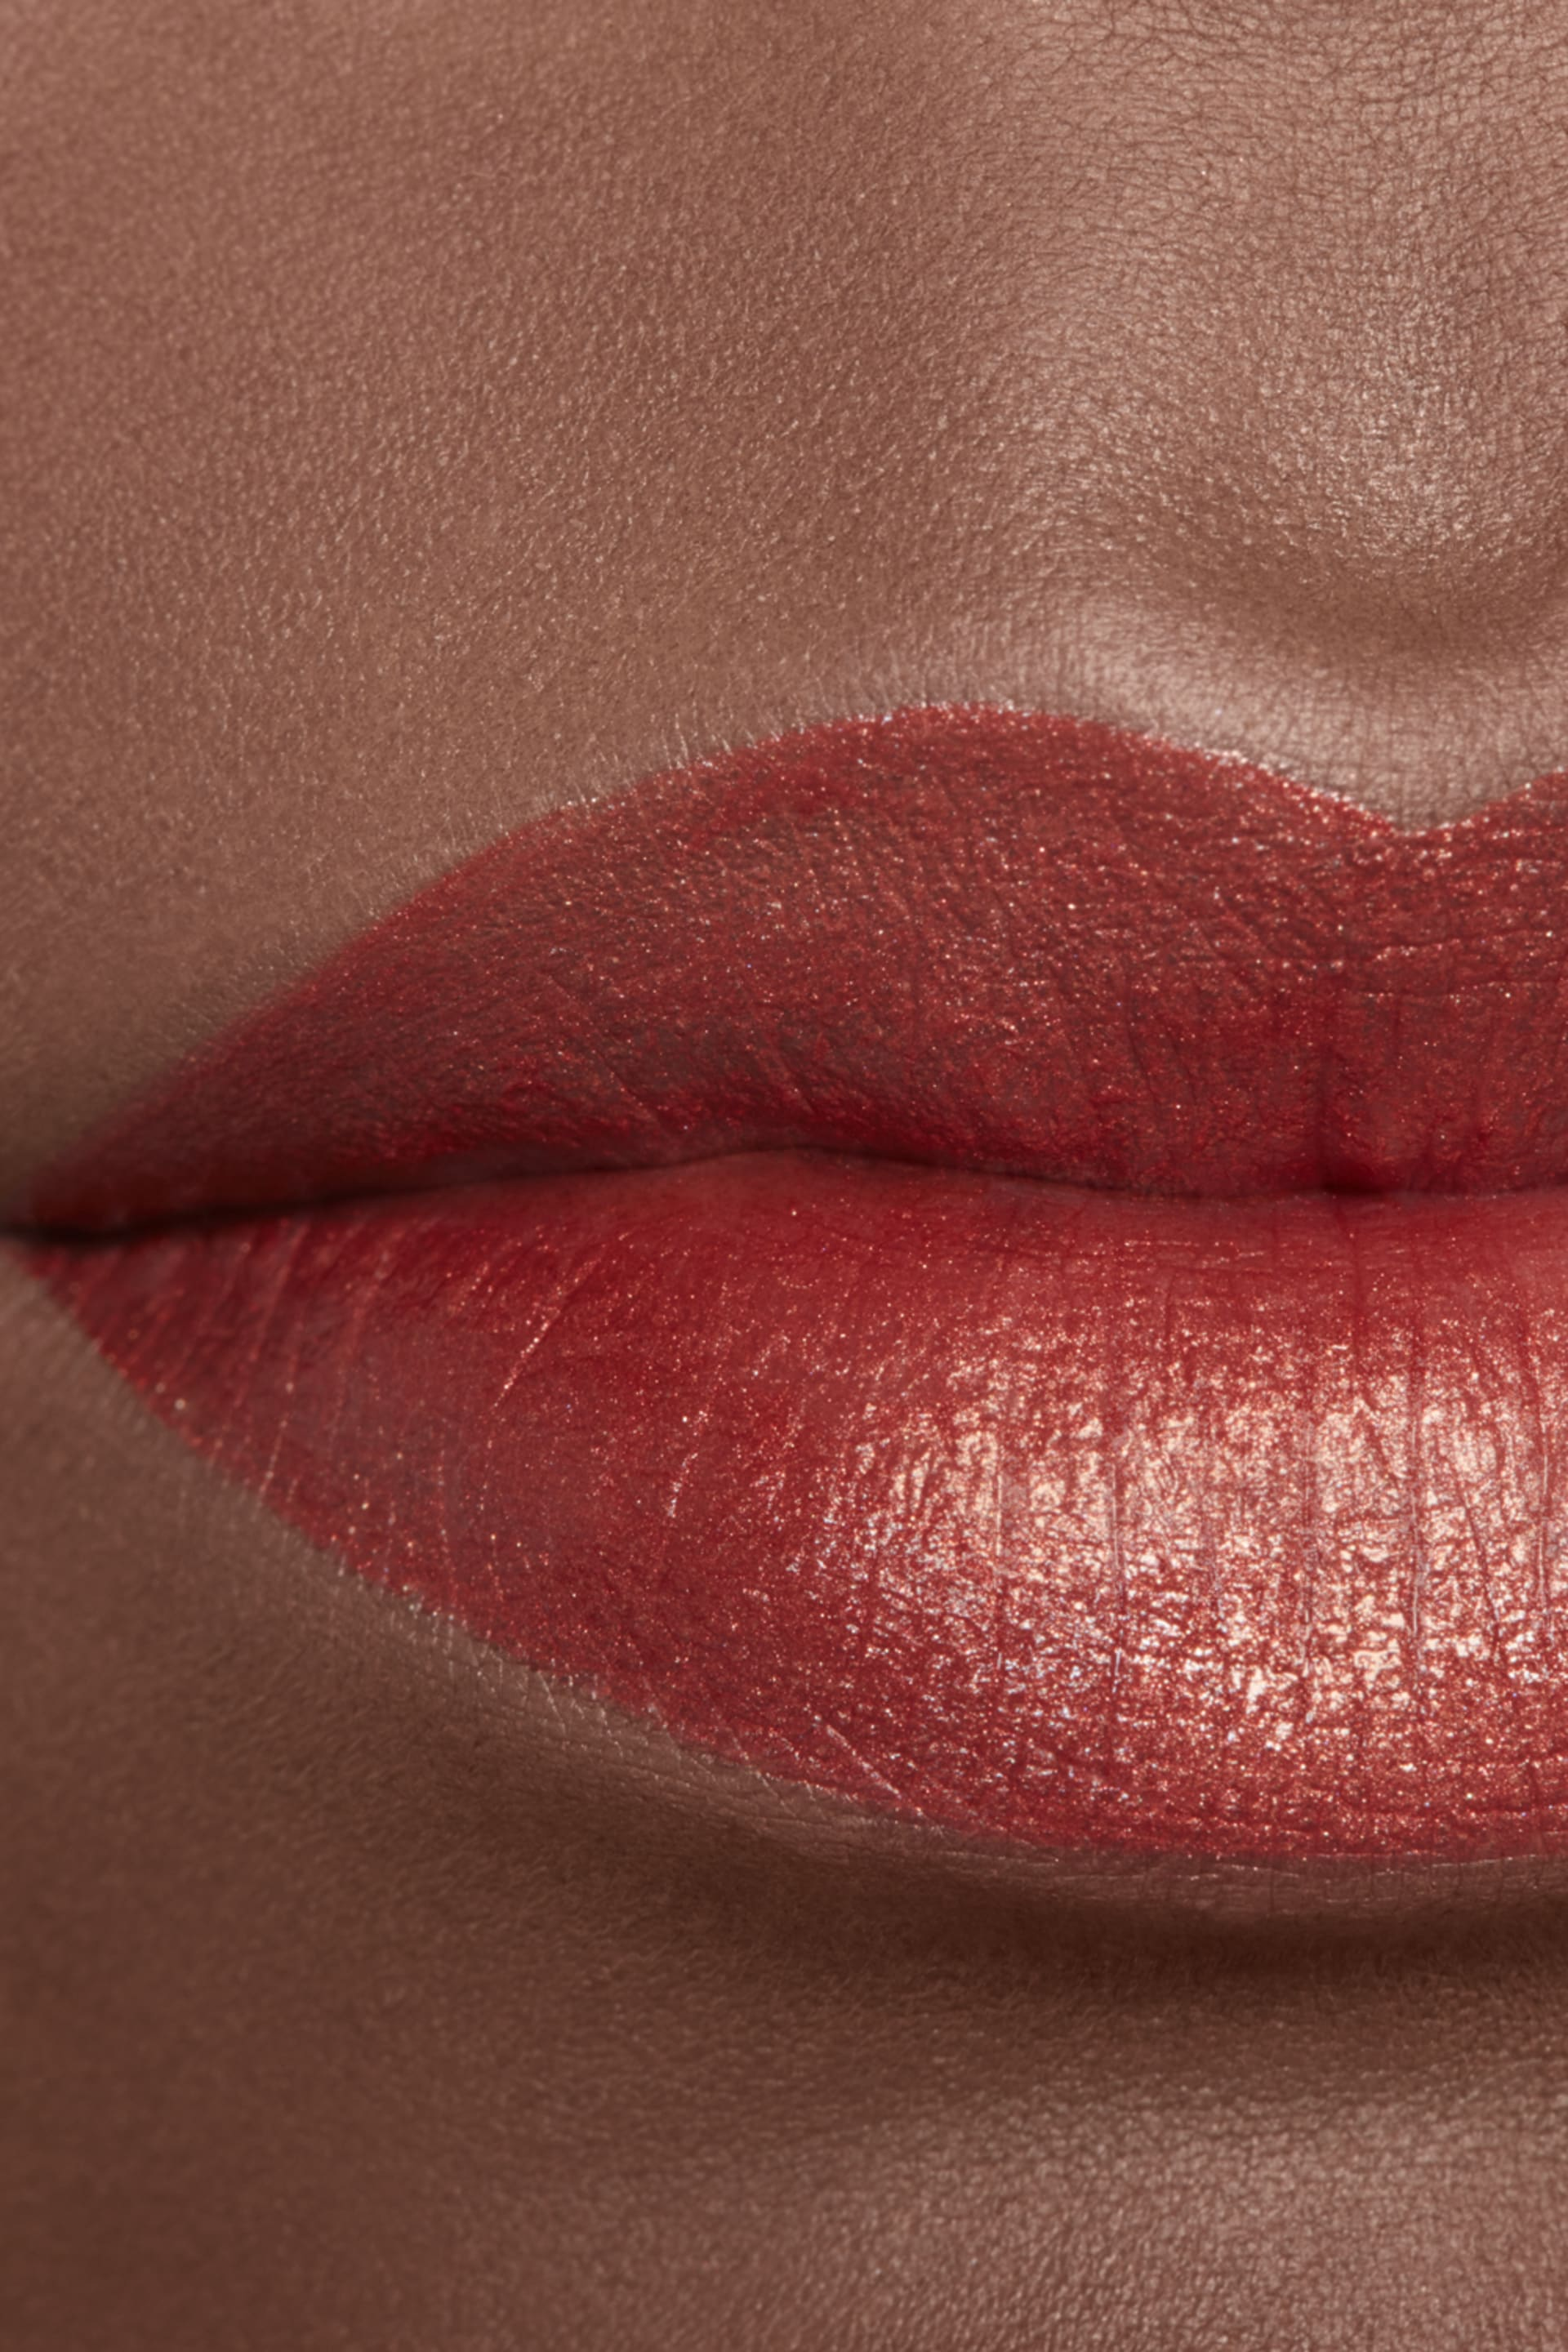 Application makeup visual 2 - ROUGE ALLURE INK 206 - METALLIC COPPER